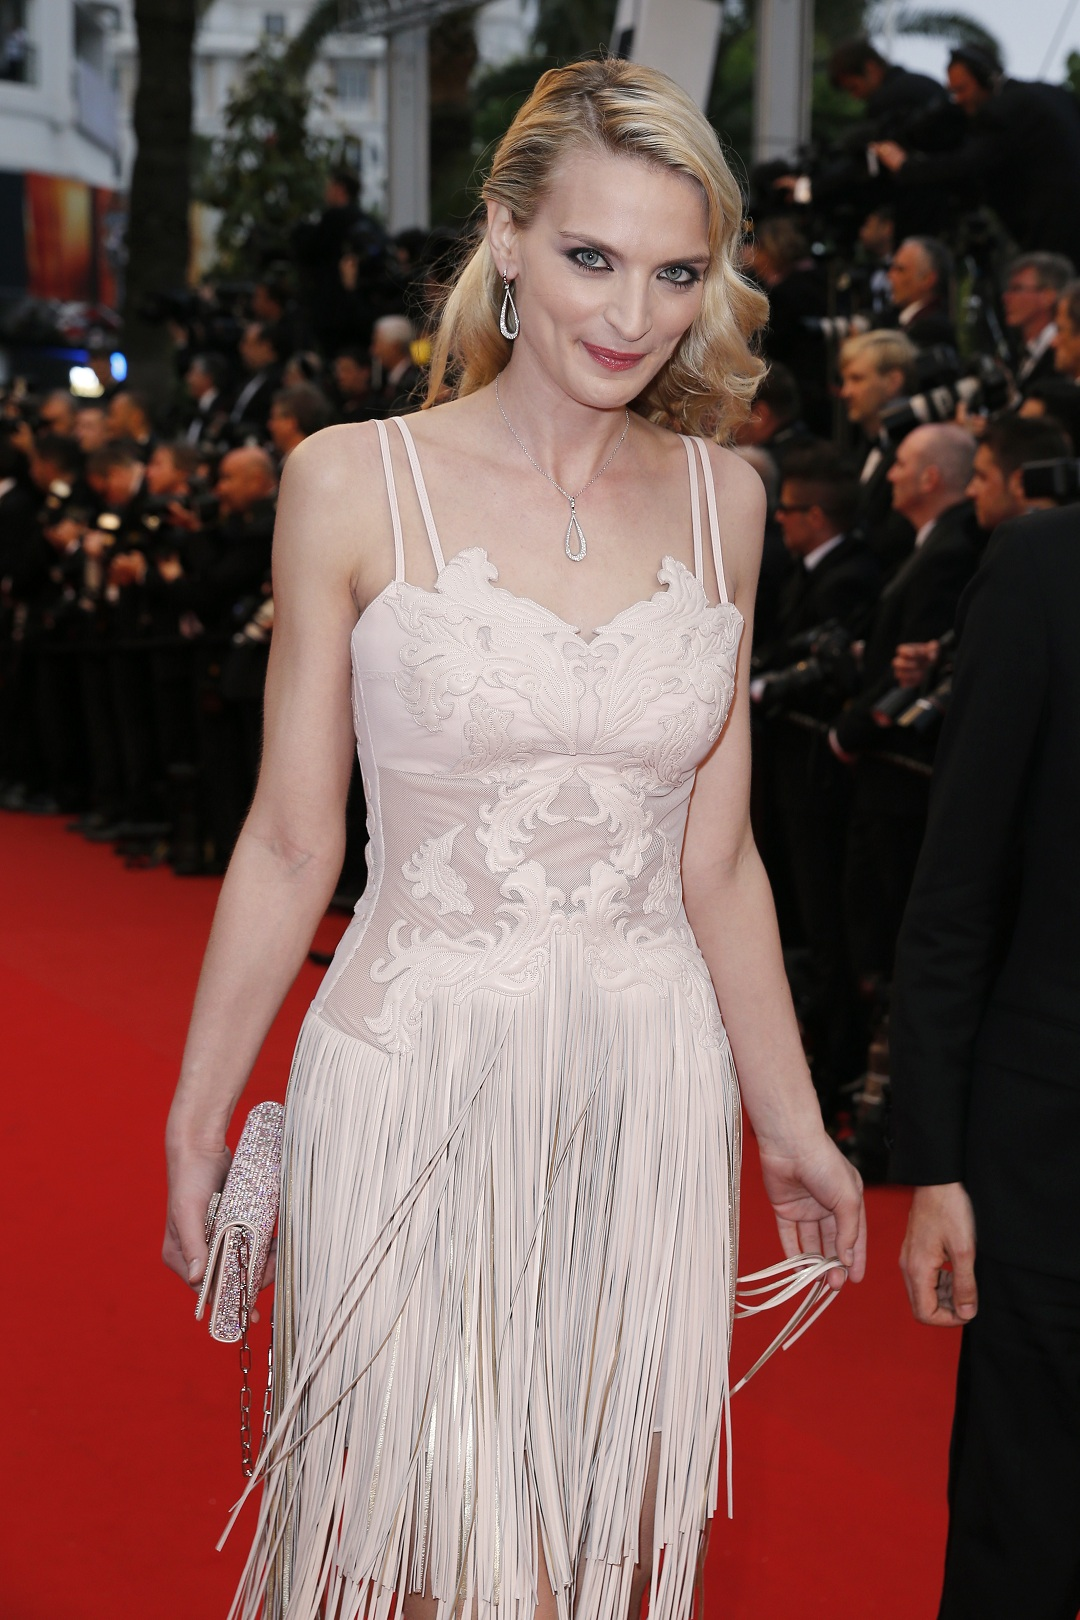 Actress_Sarah_Marshall_wearing_Montblanc_Princesse_Grace_de_Monaco_Petales_de_rose_collection